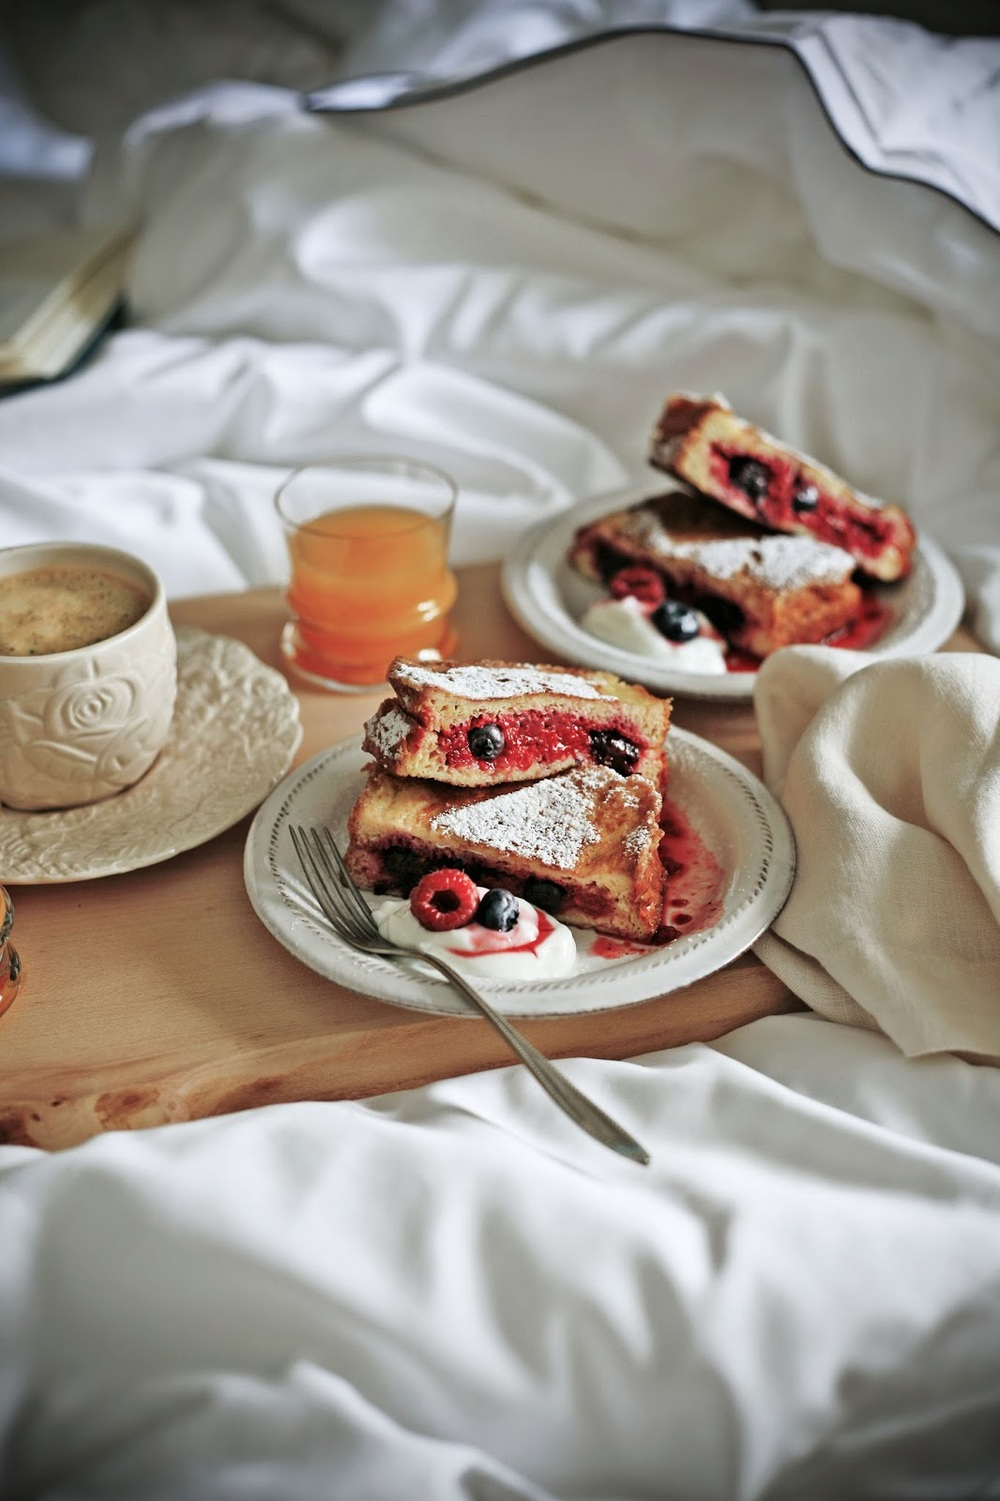 81ecb-breakfastinbed00.jpg